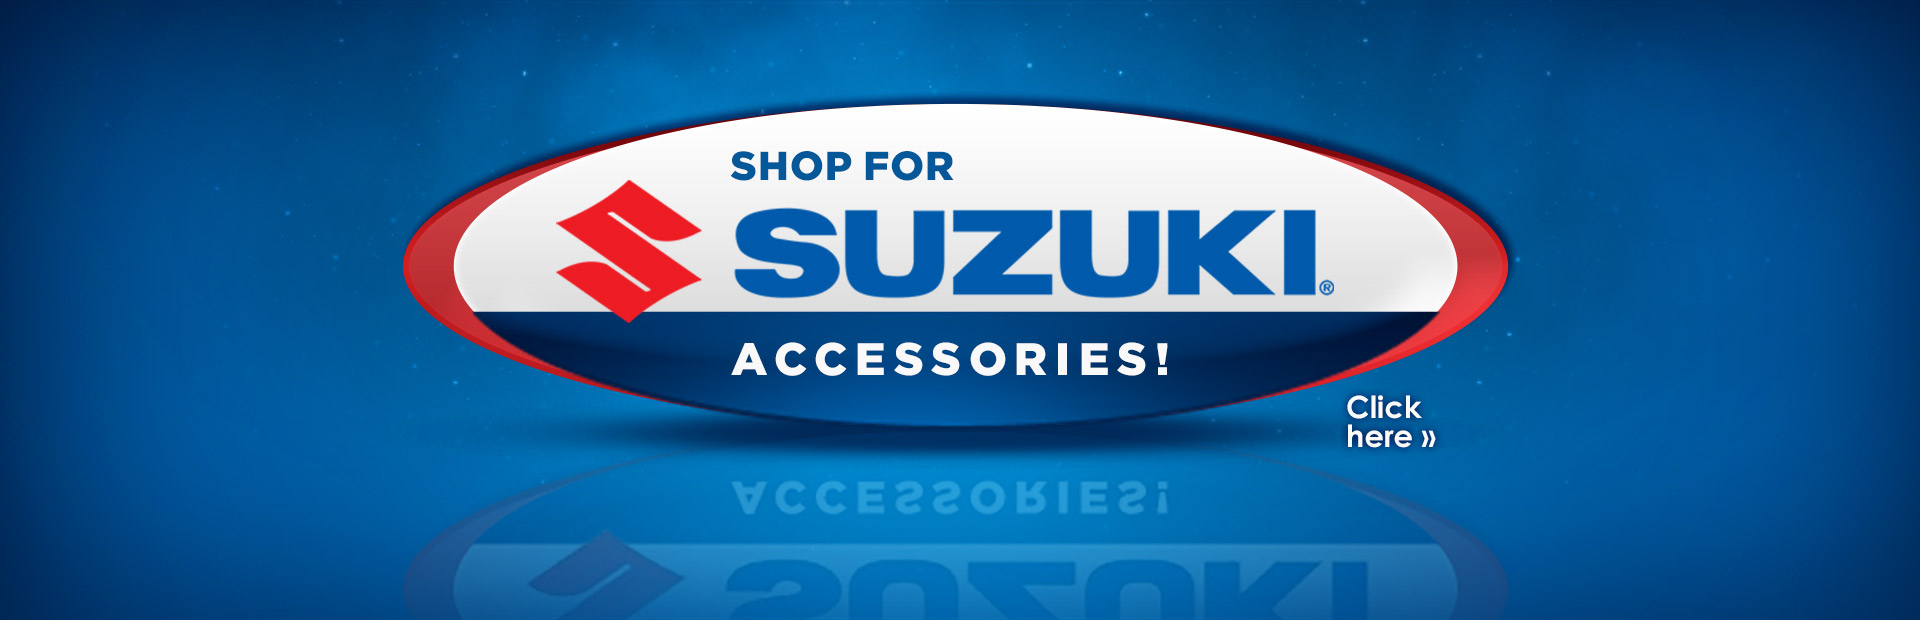 Click here to shop for Suzuki accessories!